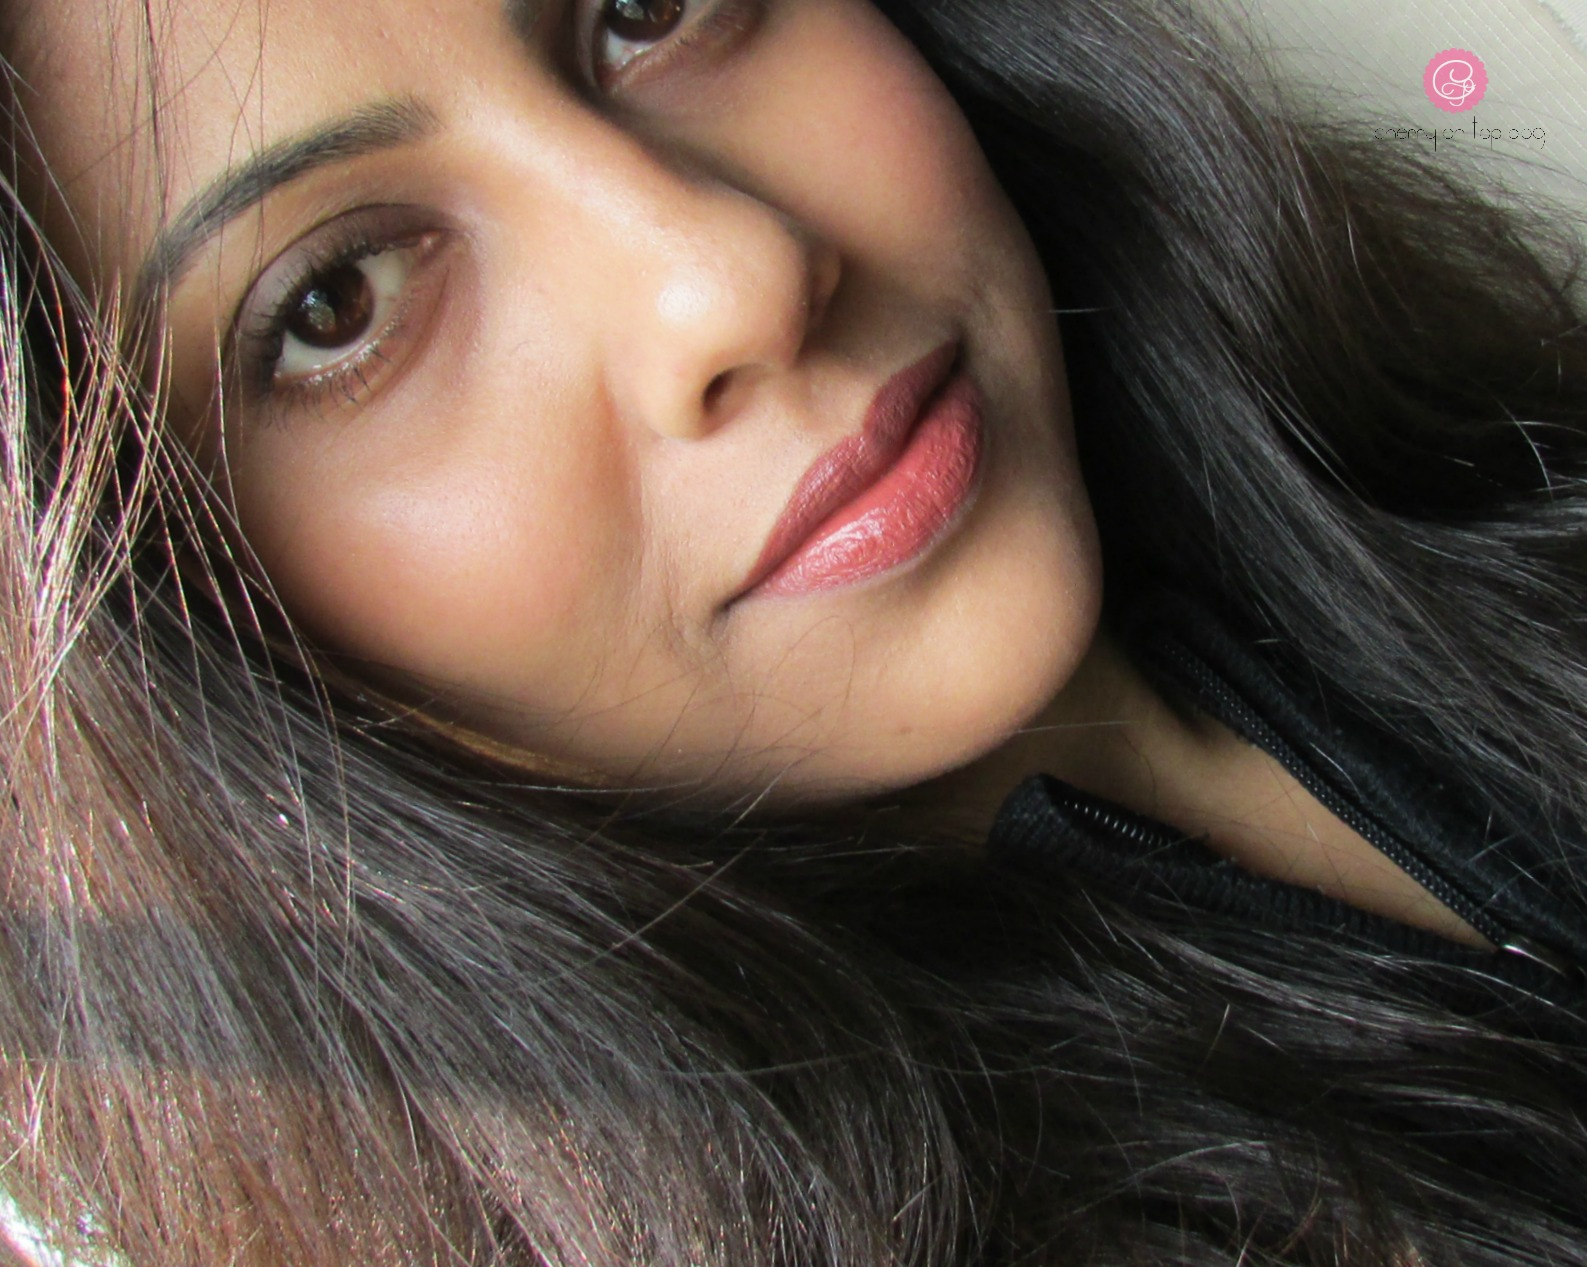 Nykaa So Matte Fall/Winter Collection Lipsticks Irish Coffee & Caramel Margarita   Review & Swatches  Cherry On Top